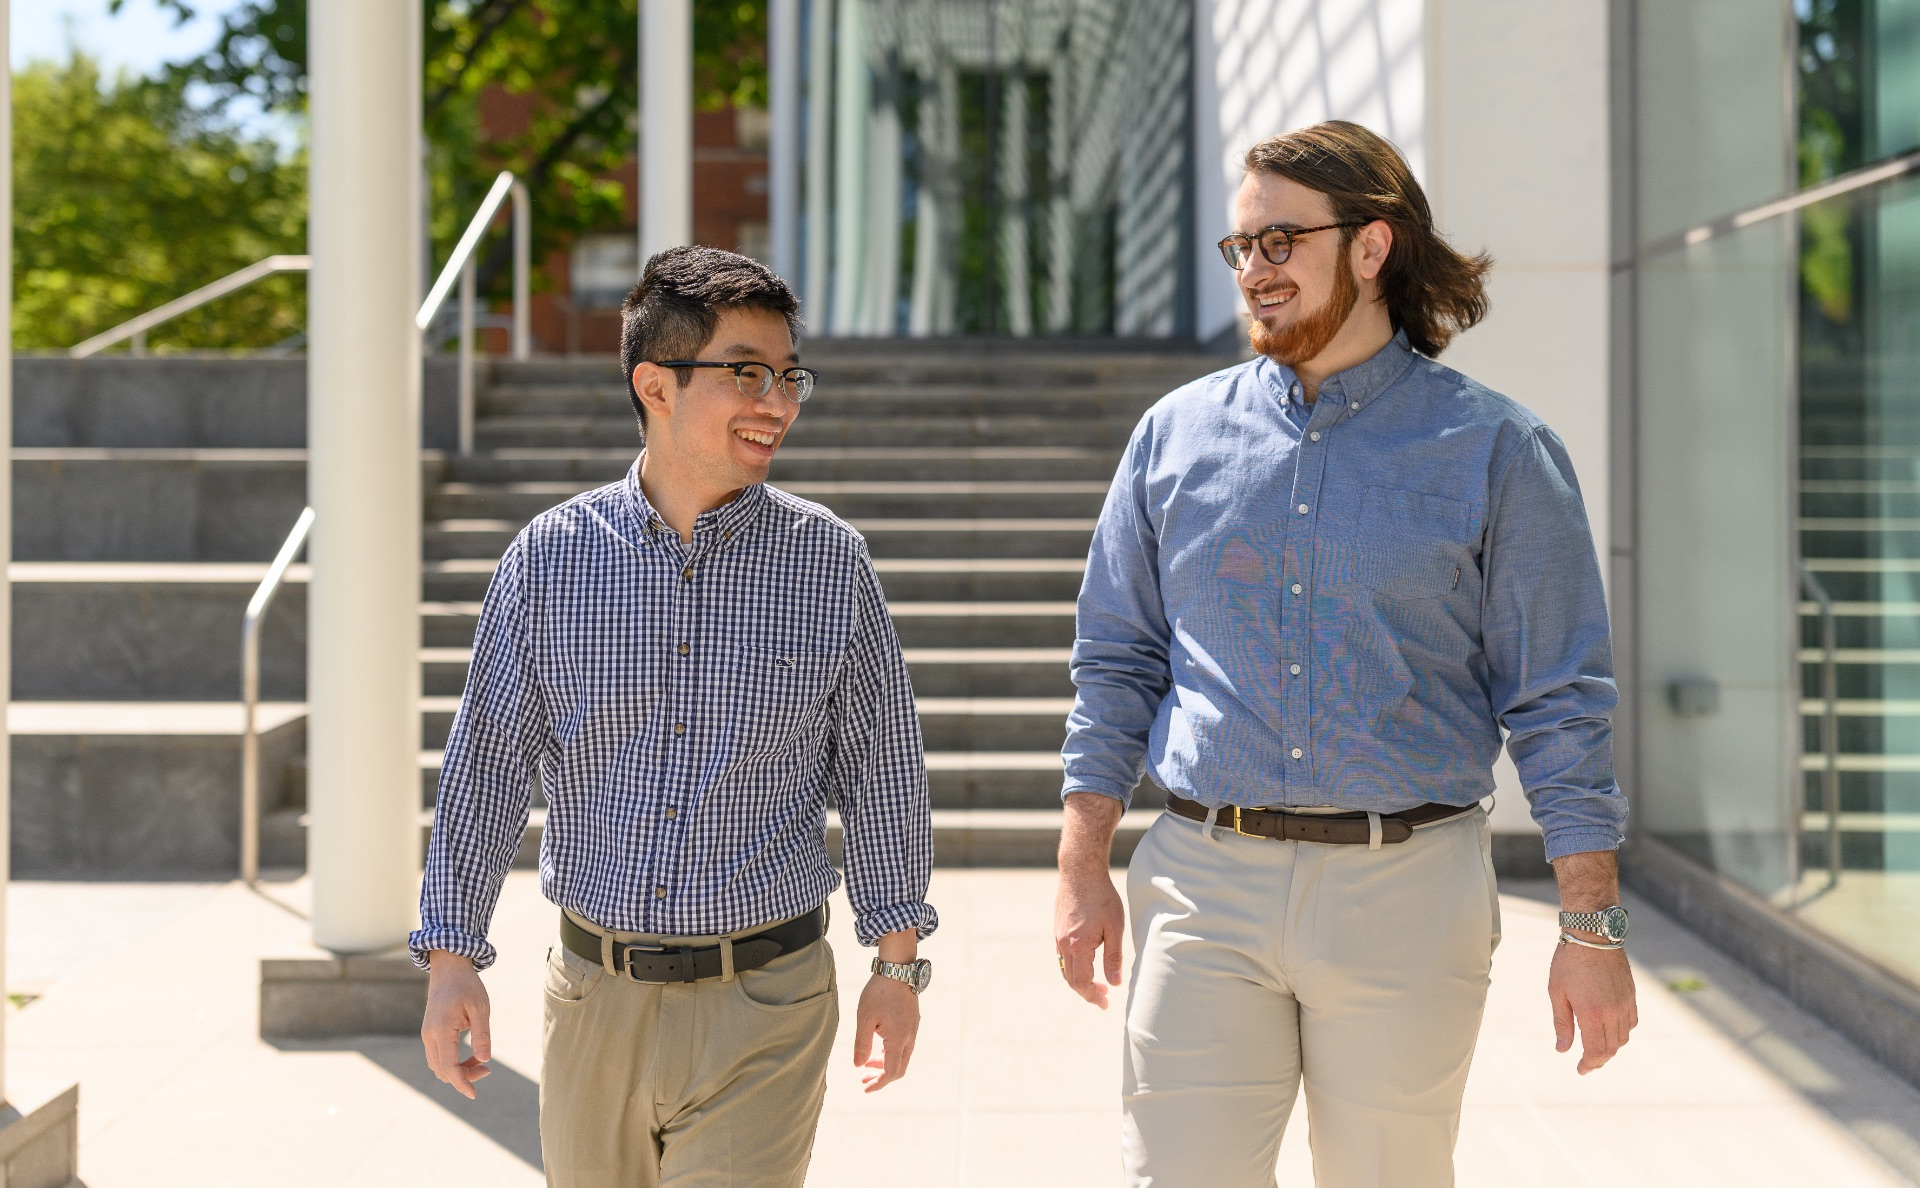 Ronnie and his roommate Zack, a young white man with long brunette hair, smile as they walk together outside. Zack is wearing a silver watch, round dark-framed glasses, and a white button-up shirt that is tucked into his khakis.